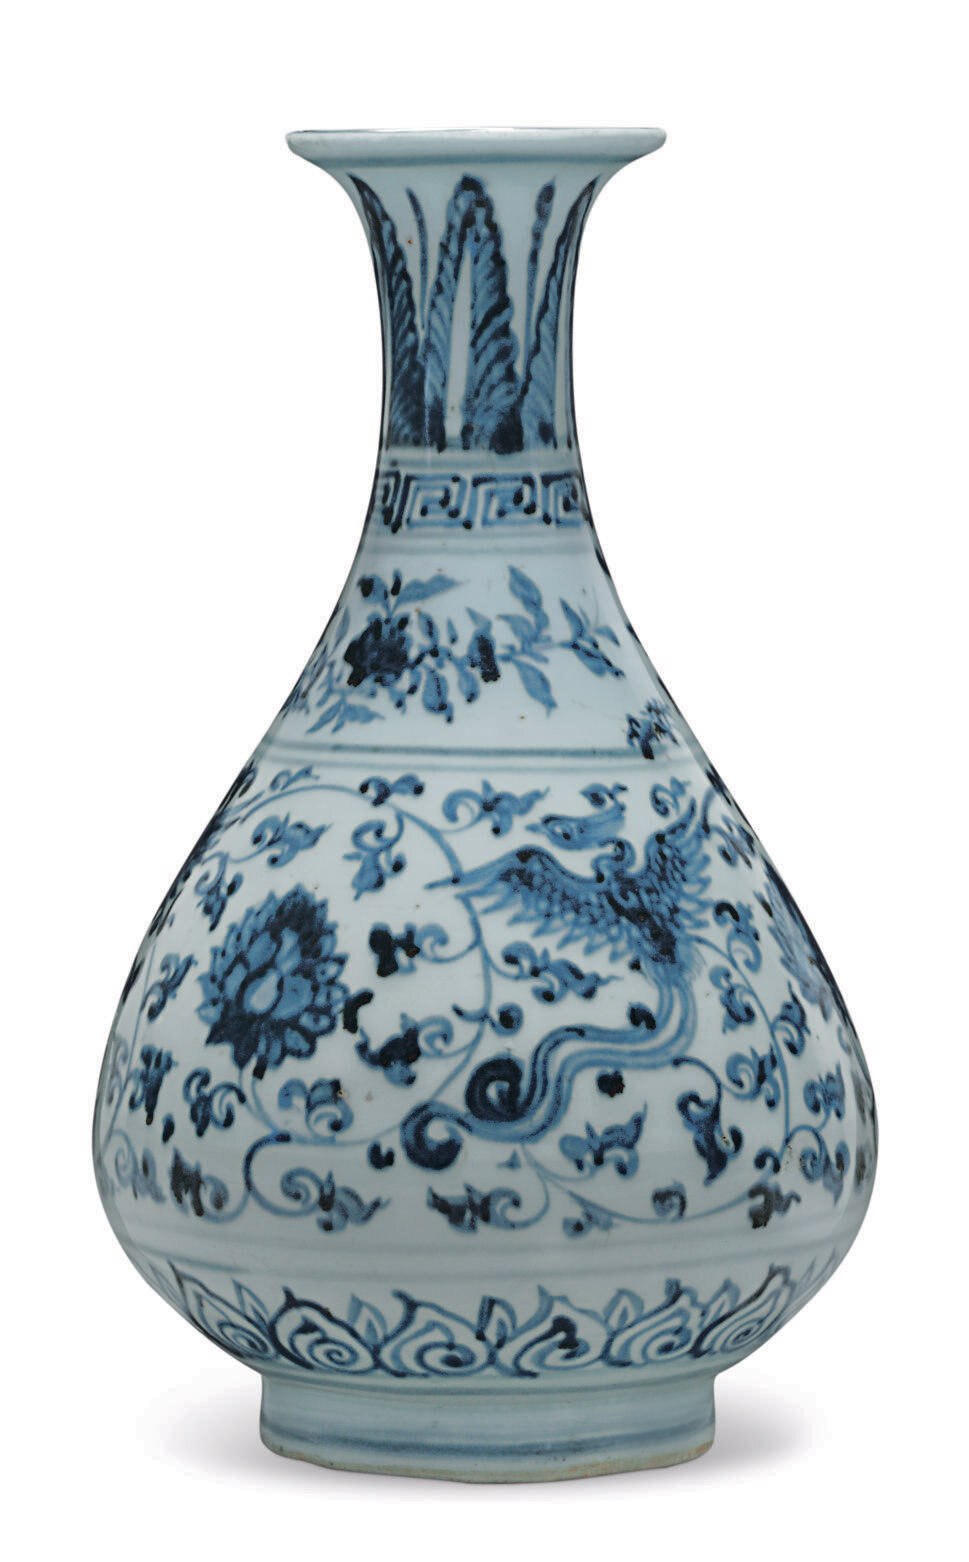 A blue and white bottle vase, yuhuchunping, Ming dynasty, 16th century